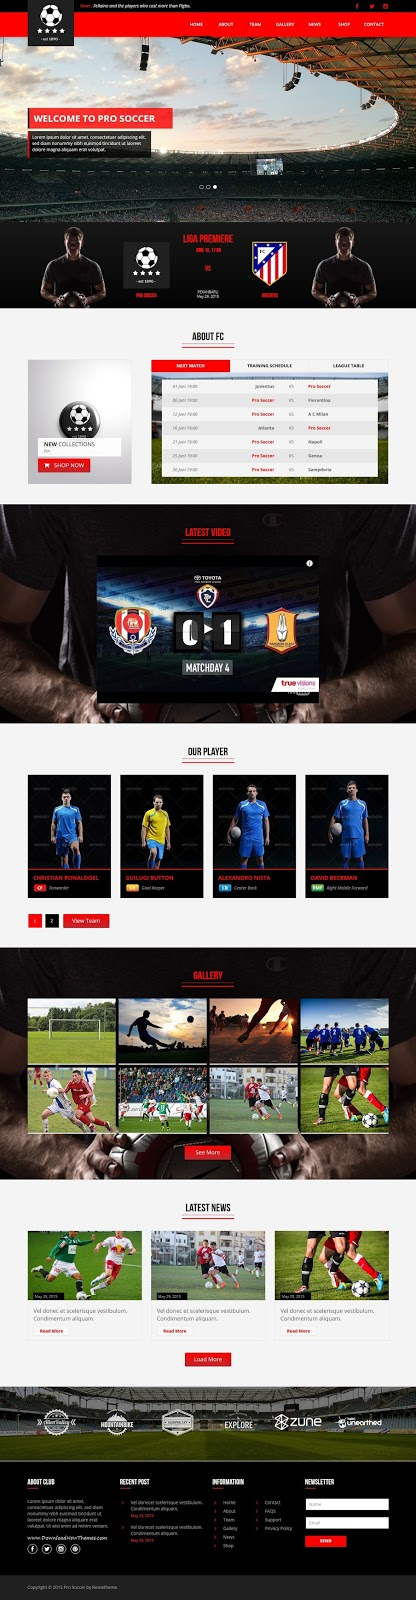 Pro Soccer Sports Club Responsive Website Template